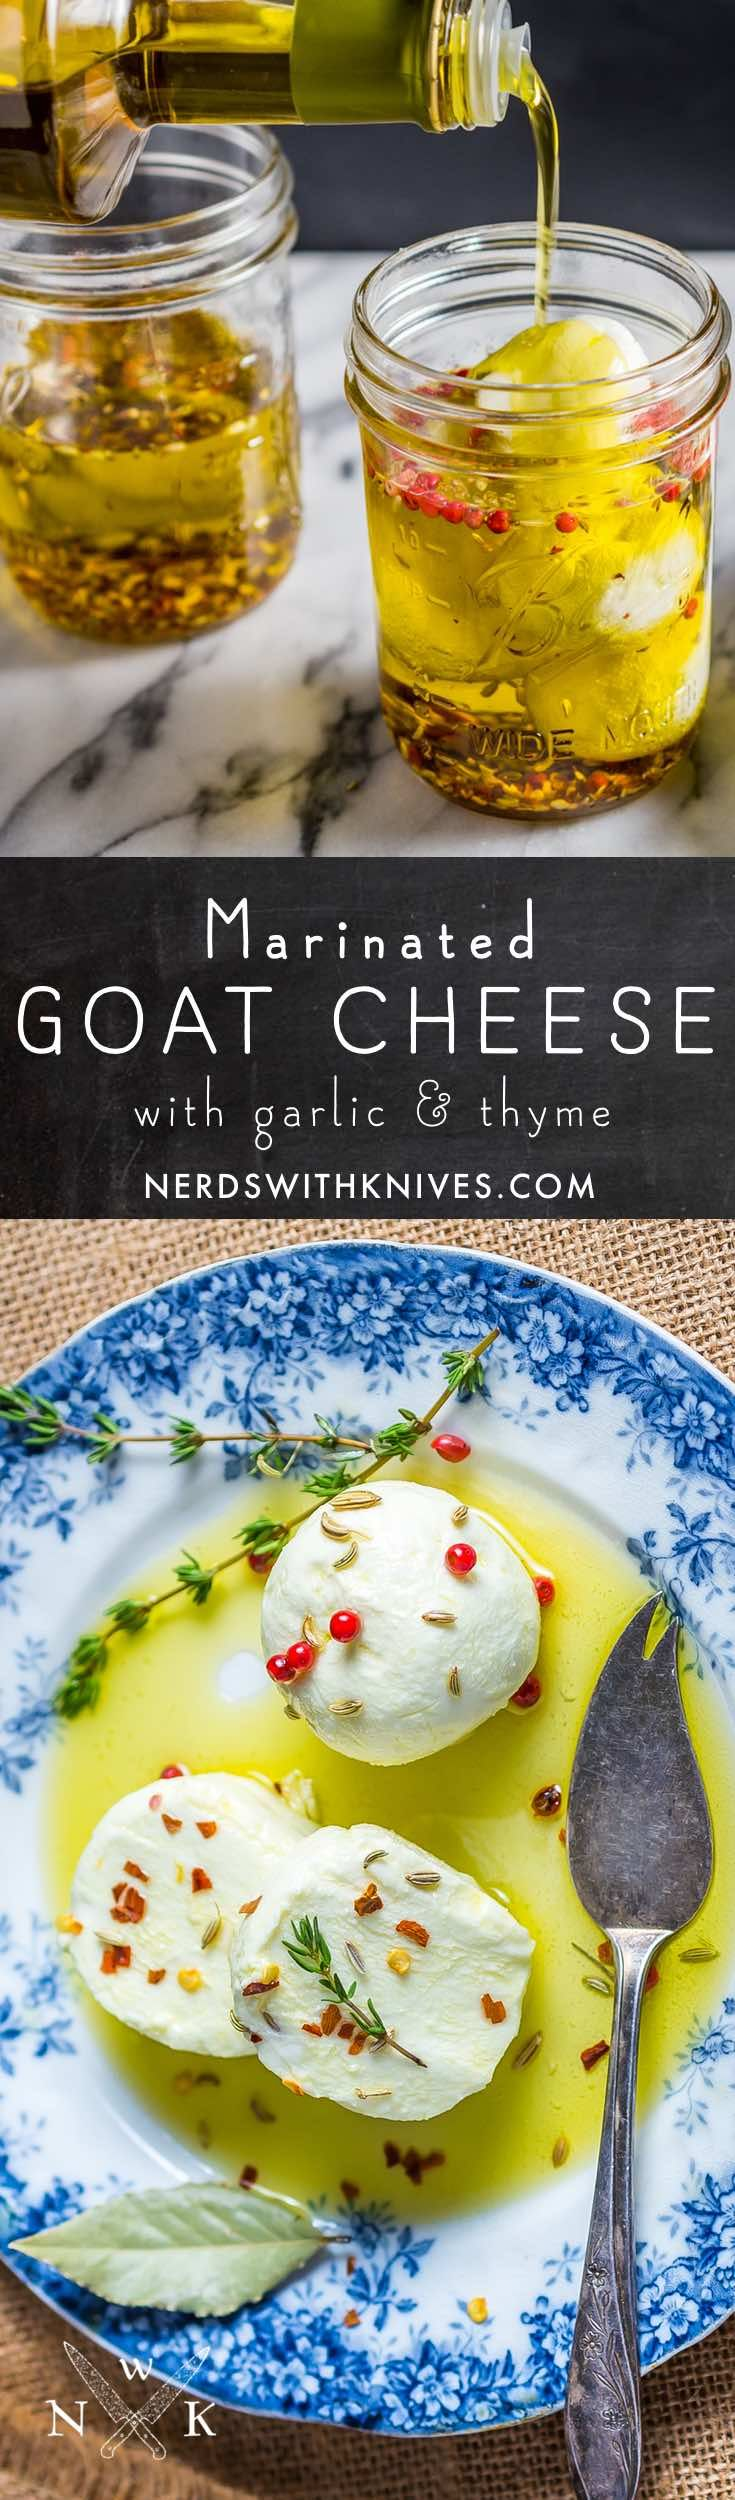 Marinated fresh goat cheese in olive oil with herbs and spices is almost effortless but incredibly delicious. Use it as a topping for crackers, a spread for sandwiches, or crumbled into salads.